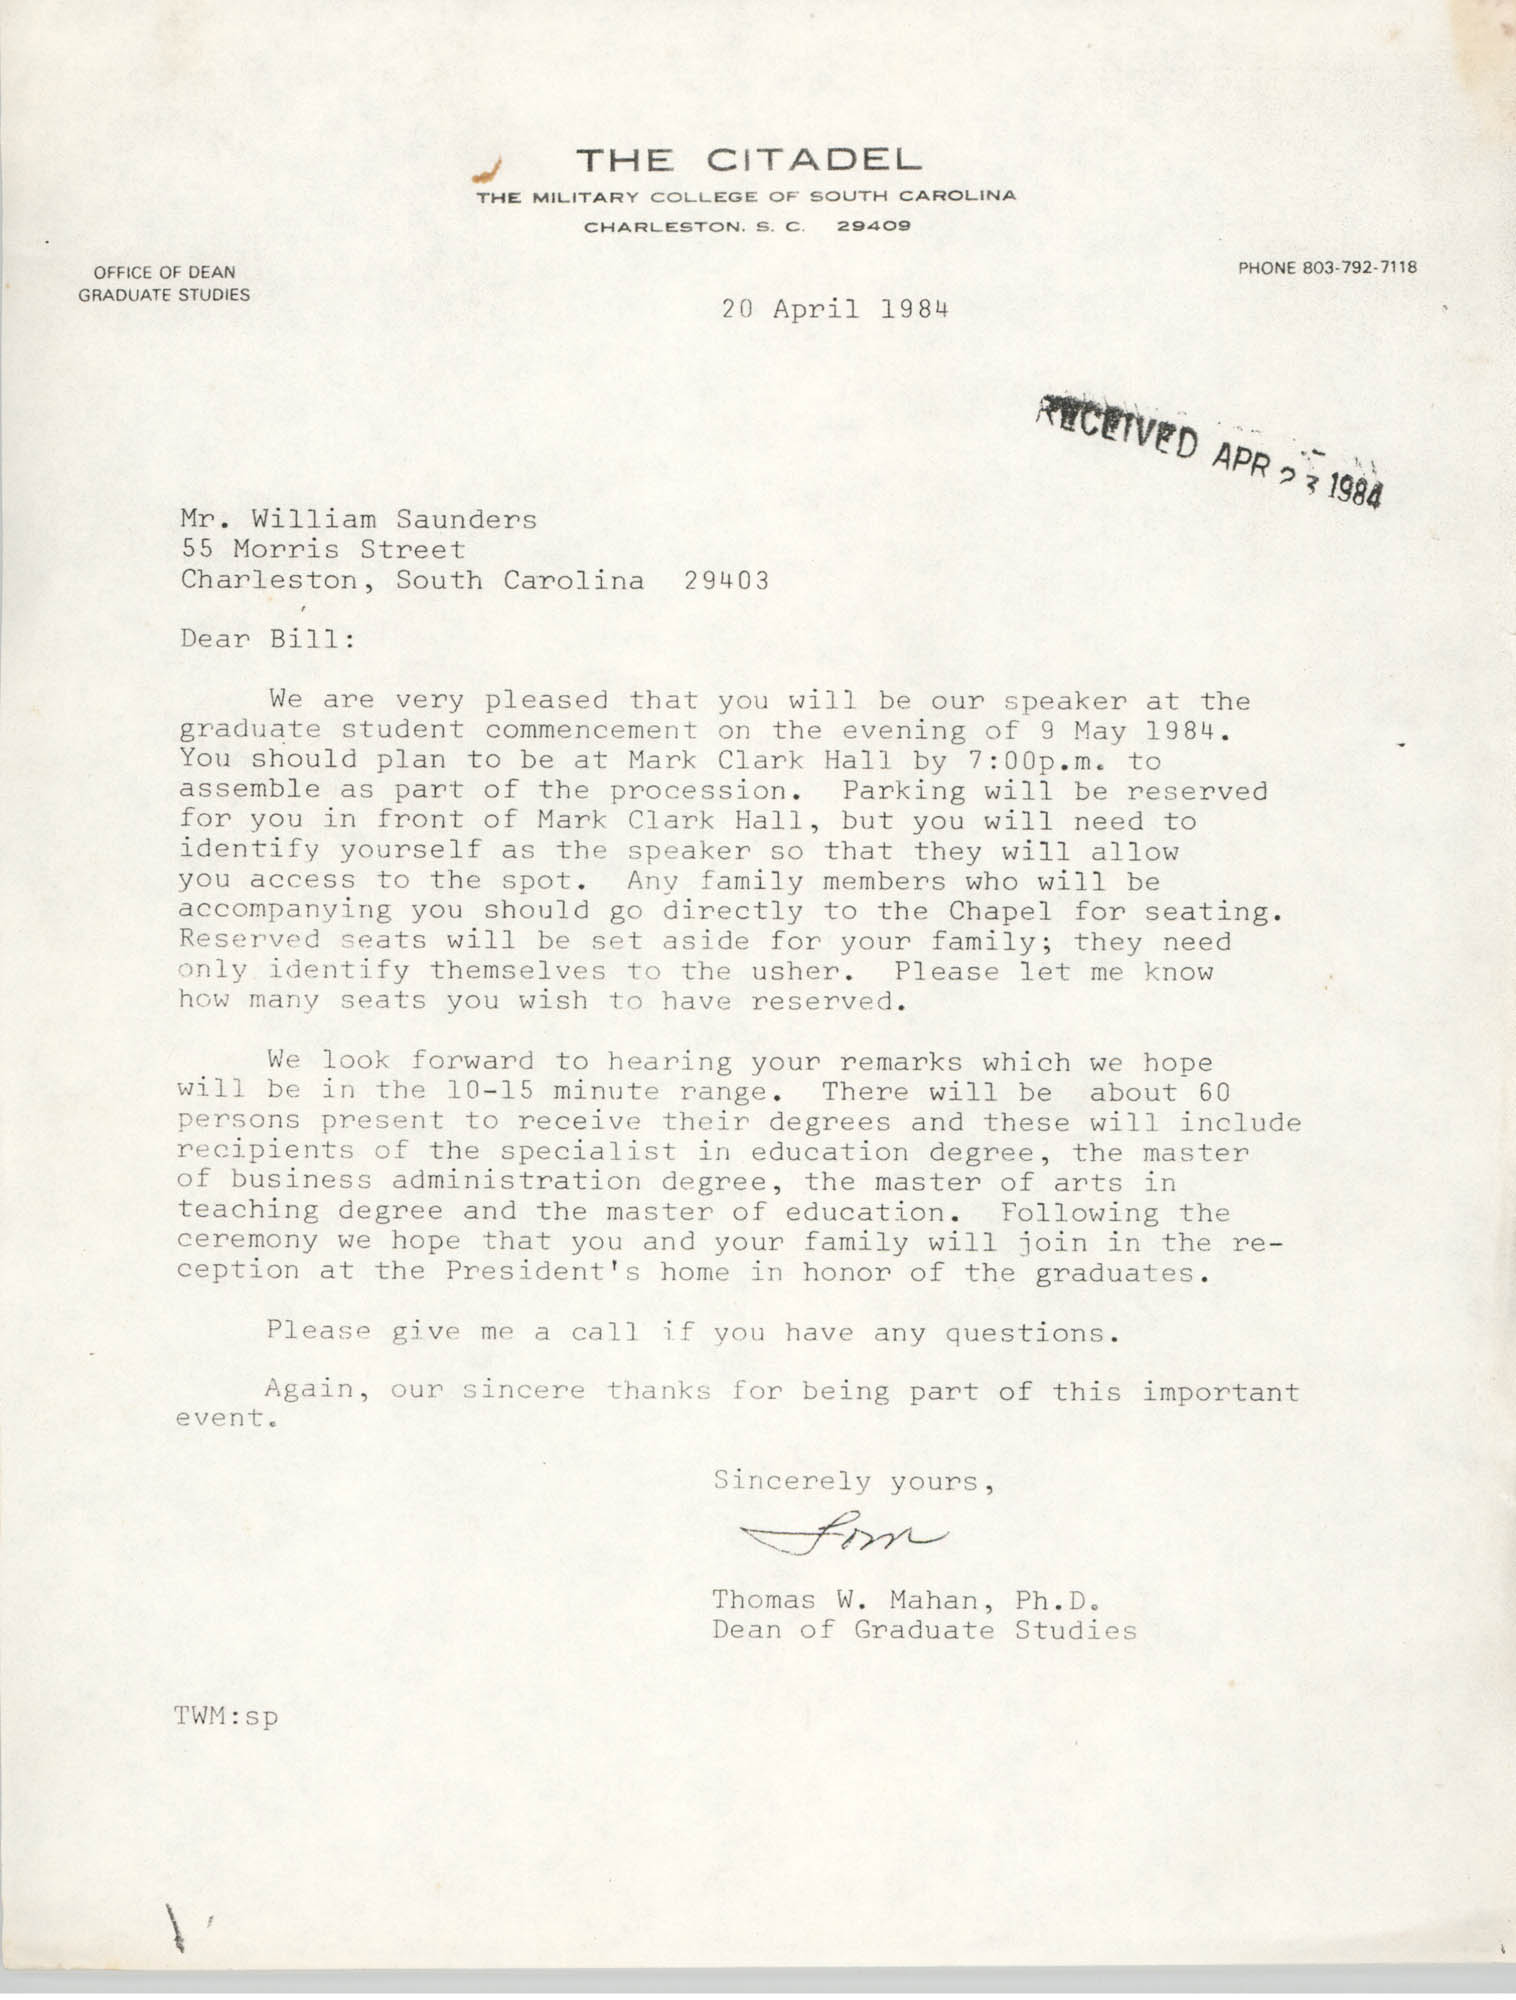 Letter from Thomas W. Mahan to William Saunders, April 20, 1984